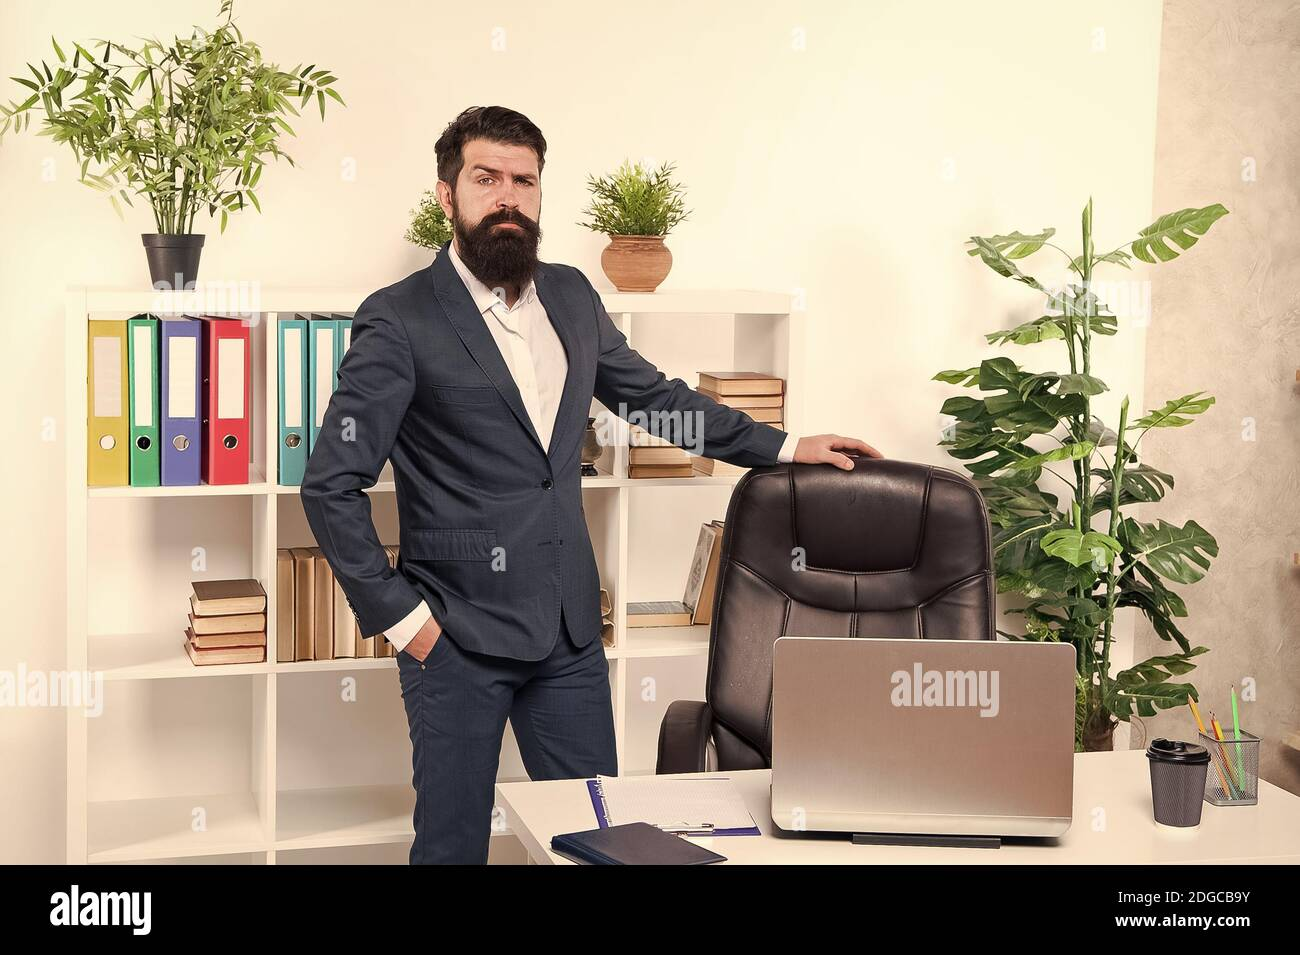 Vacant position. Human resource manager in office. Interviewer welcome job candidate. Man having job interview in company HR department. Empty chair. Bearded boss stand in office. Start career here. Stock Photo